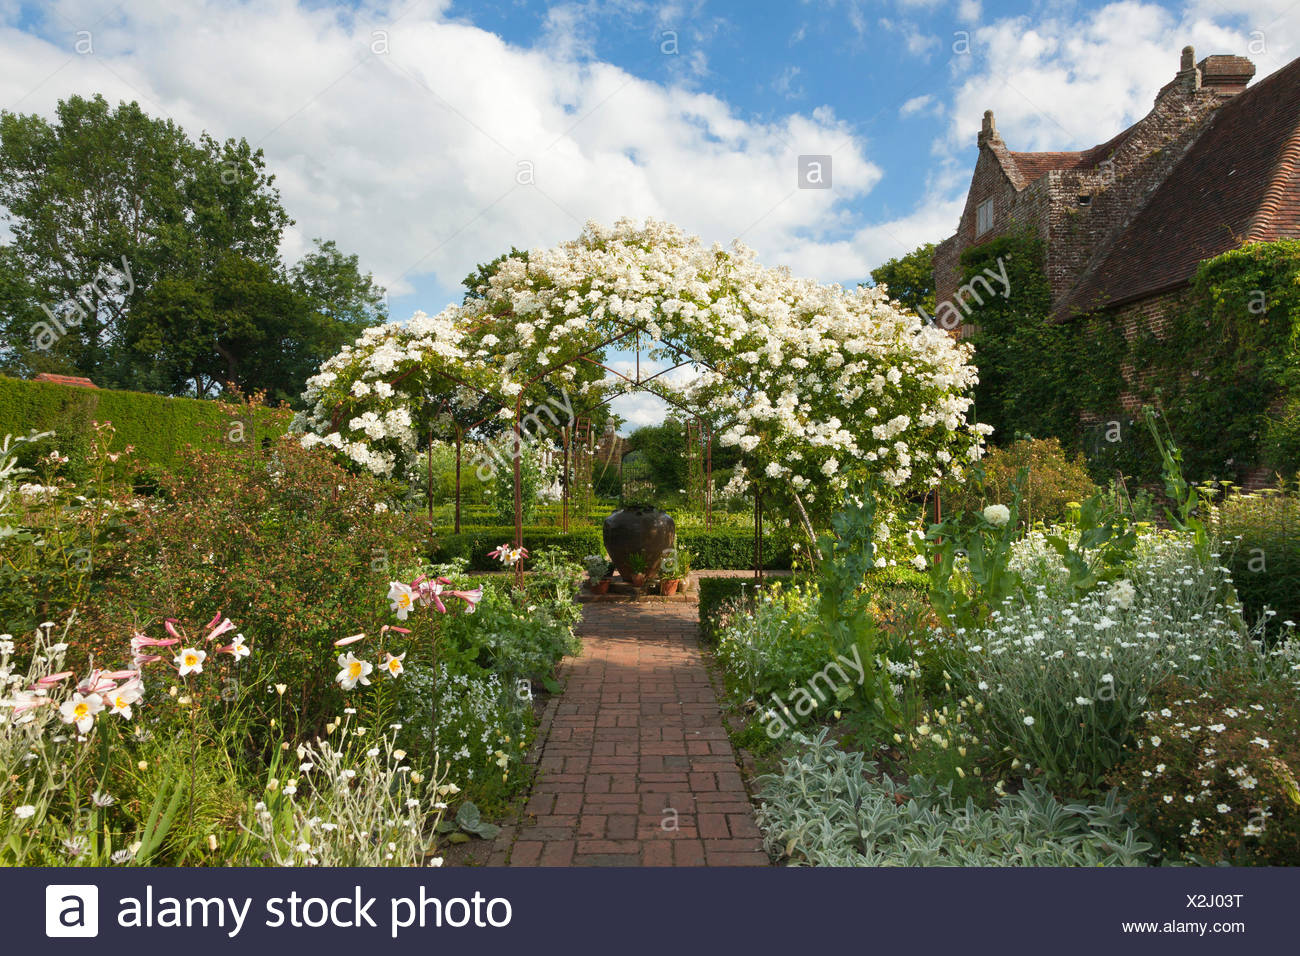 sissinghurst white garden stock photos sissinghurst white garden stock images alamy. Black Bedroom Furniture Sets. Home Design Ideas